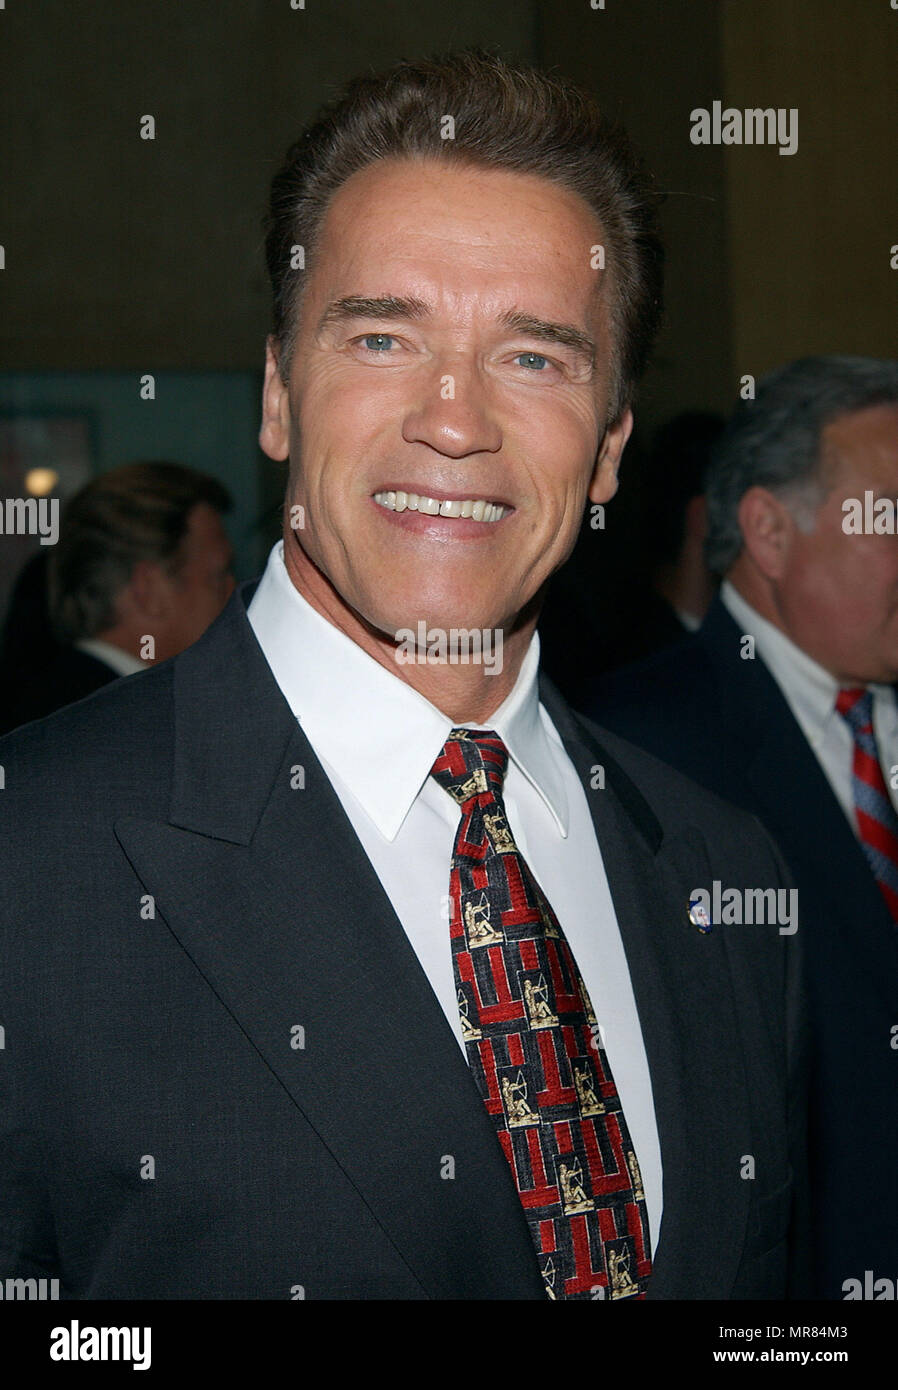 March 19 2003 High Resolution Stock Photography And Images Alamy